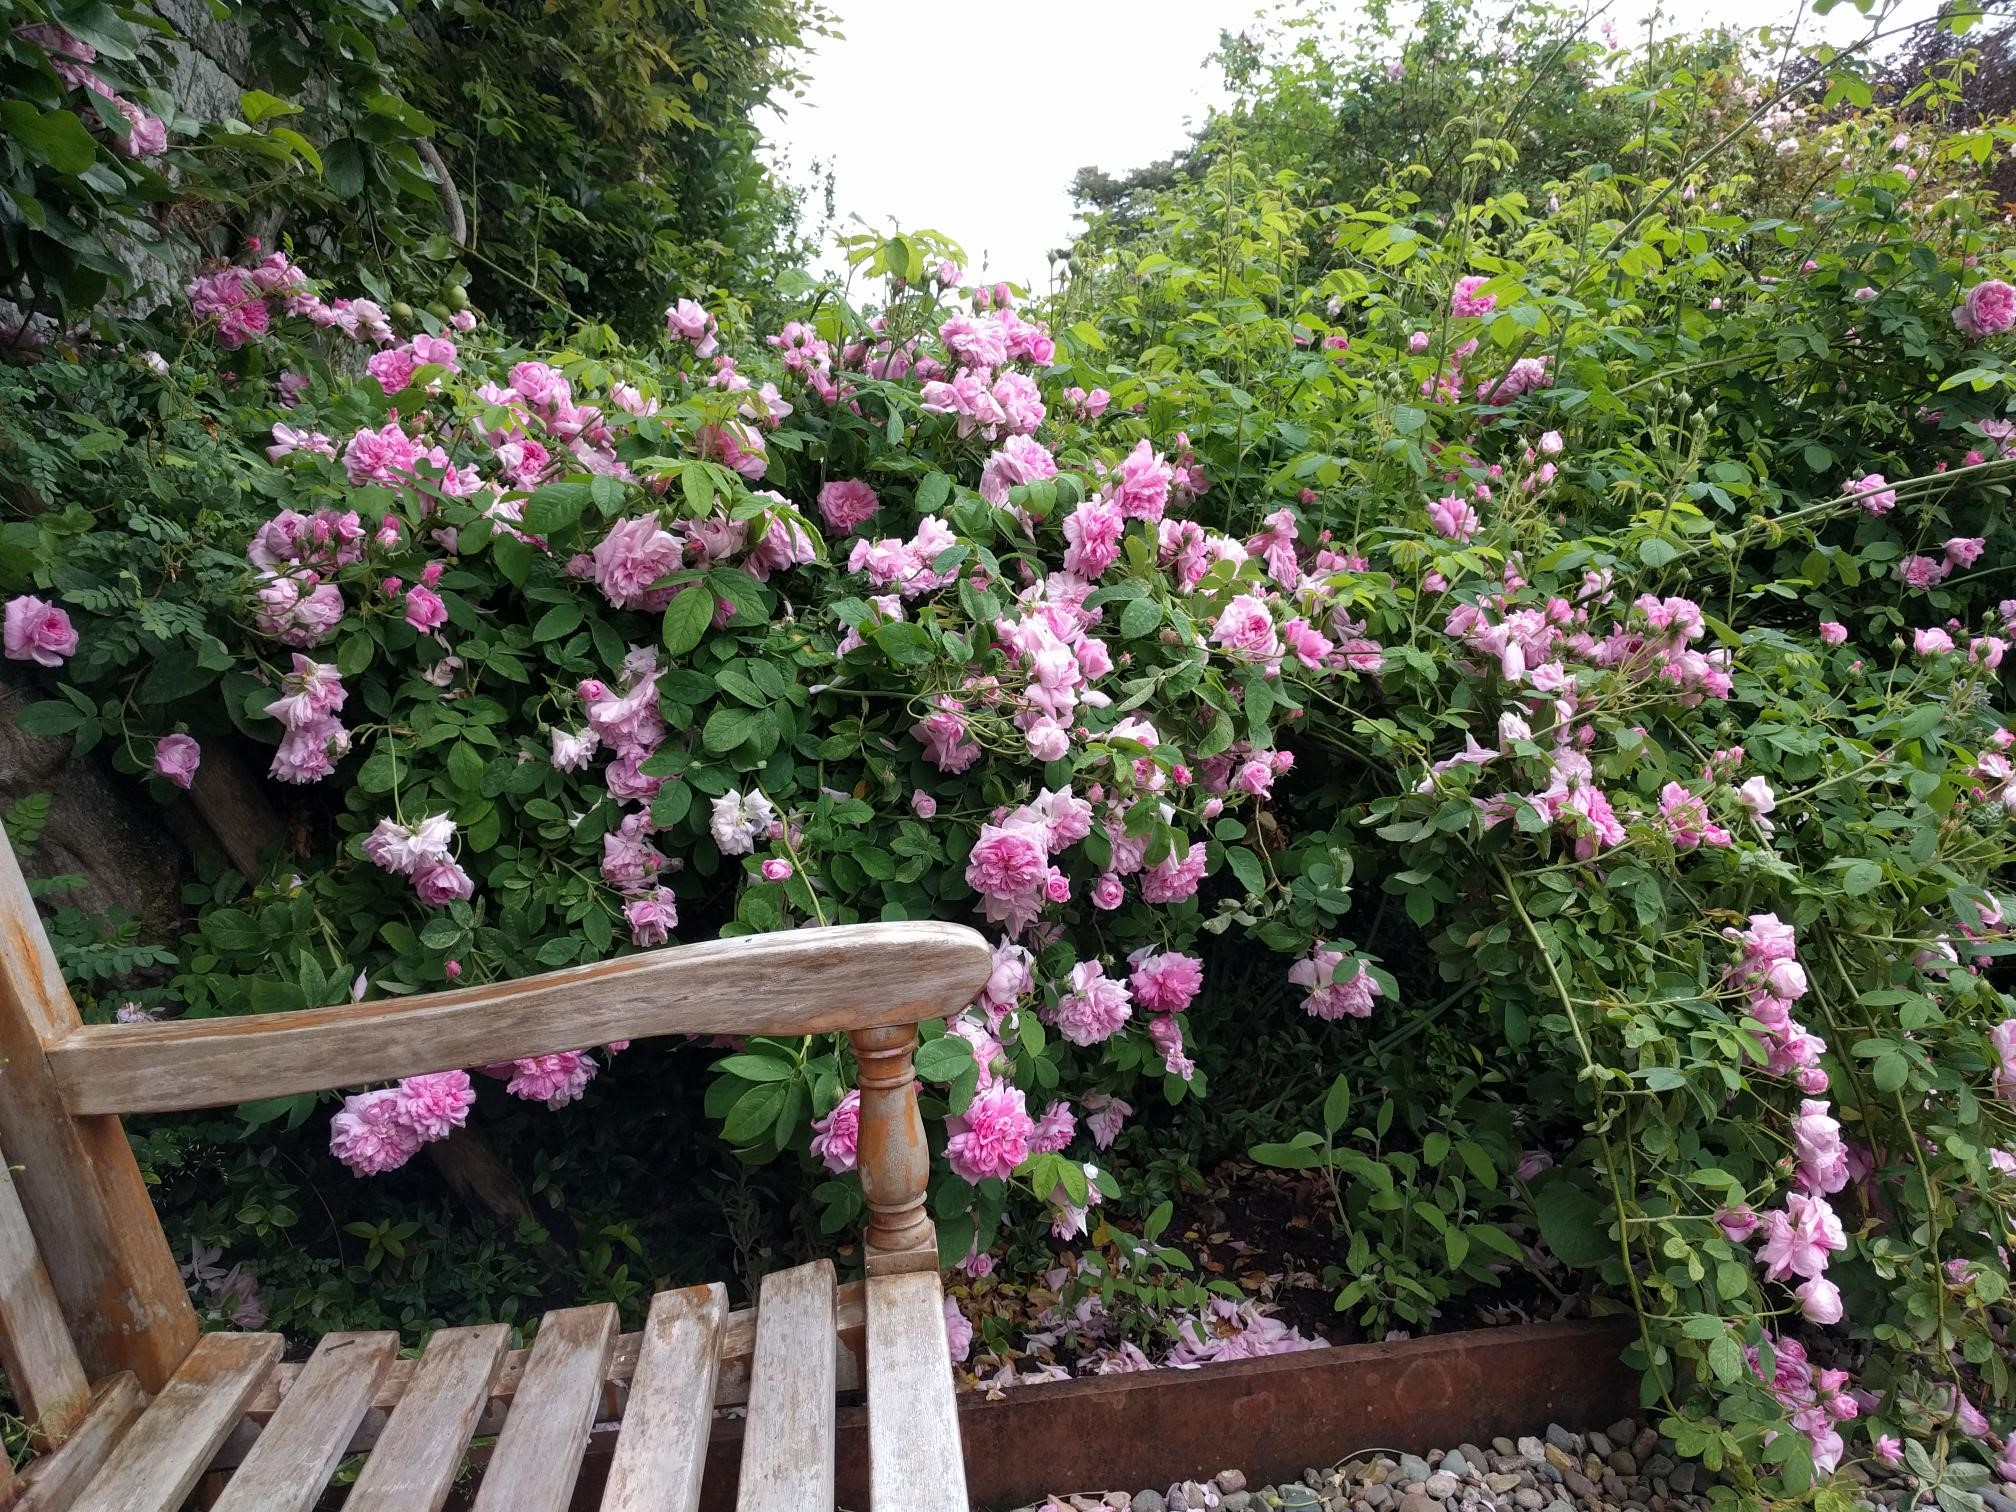 Old Fashioned Roses at Dalemain